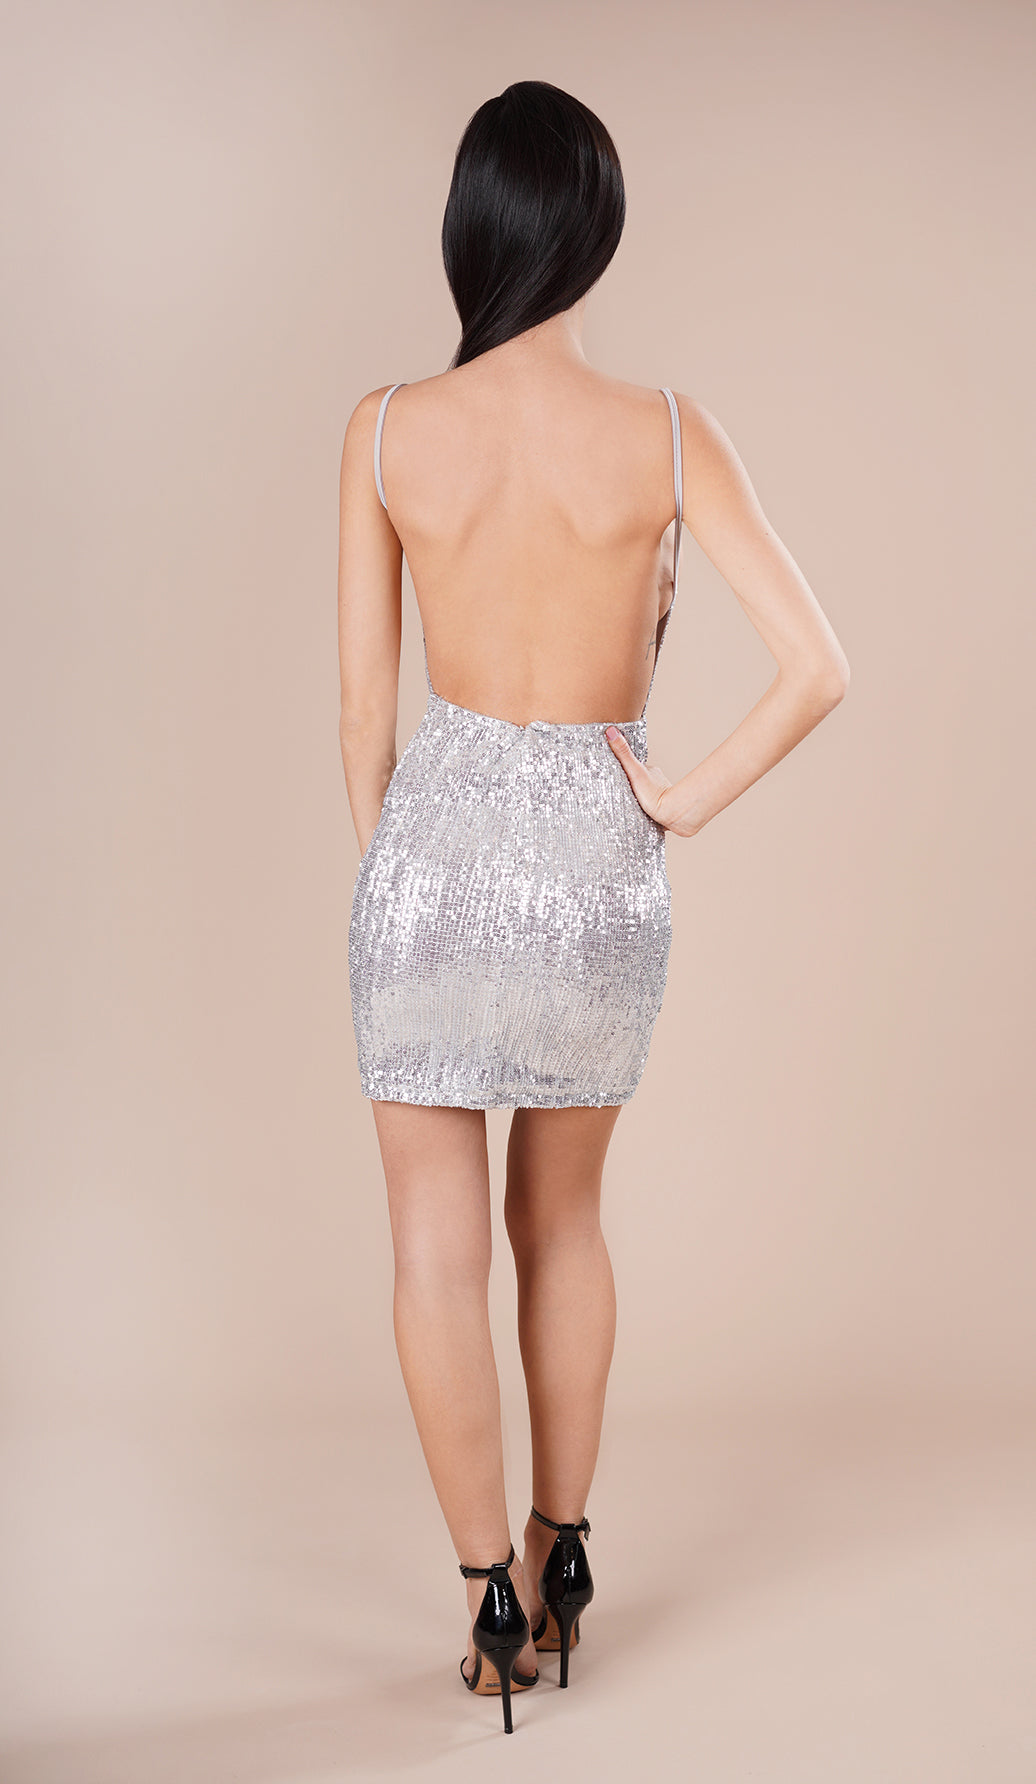 'KAYLA' Sequin Mini Dress - Silver - GLAMBAE FASHION